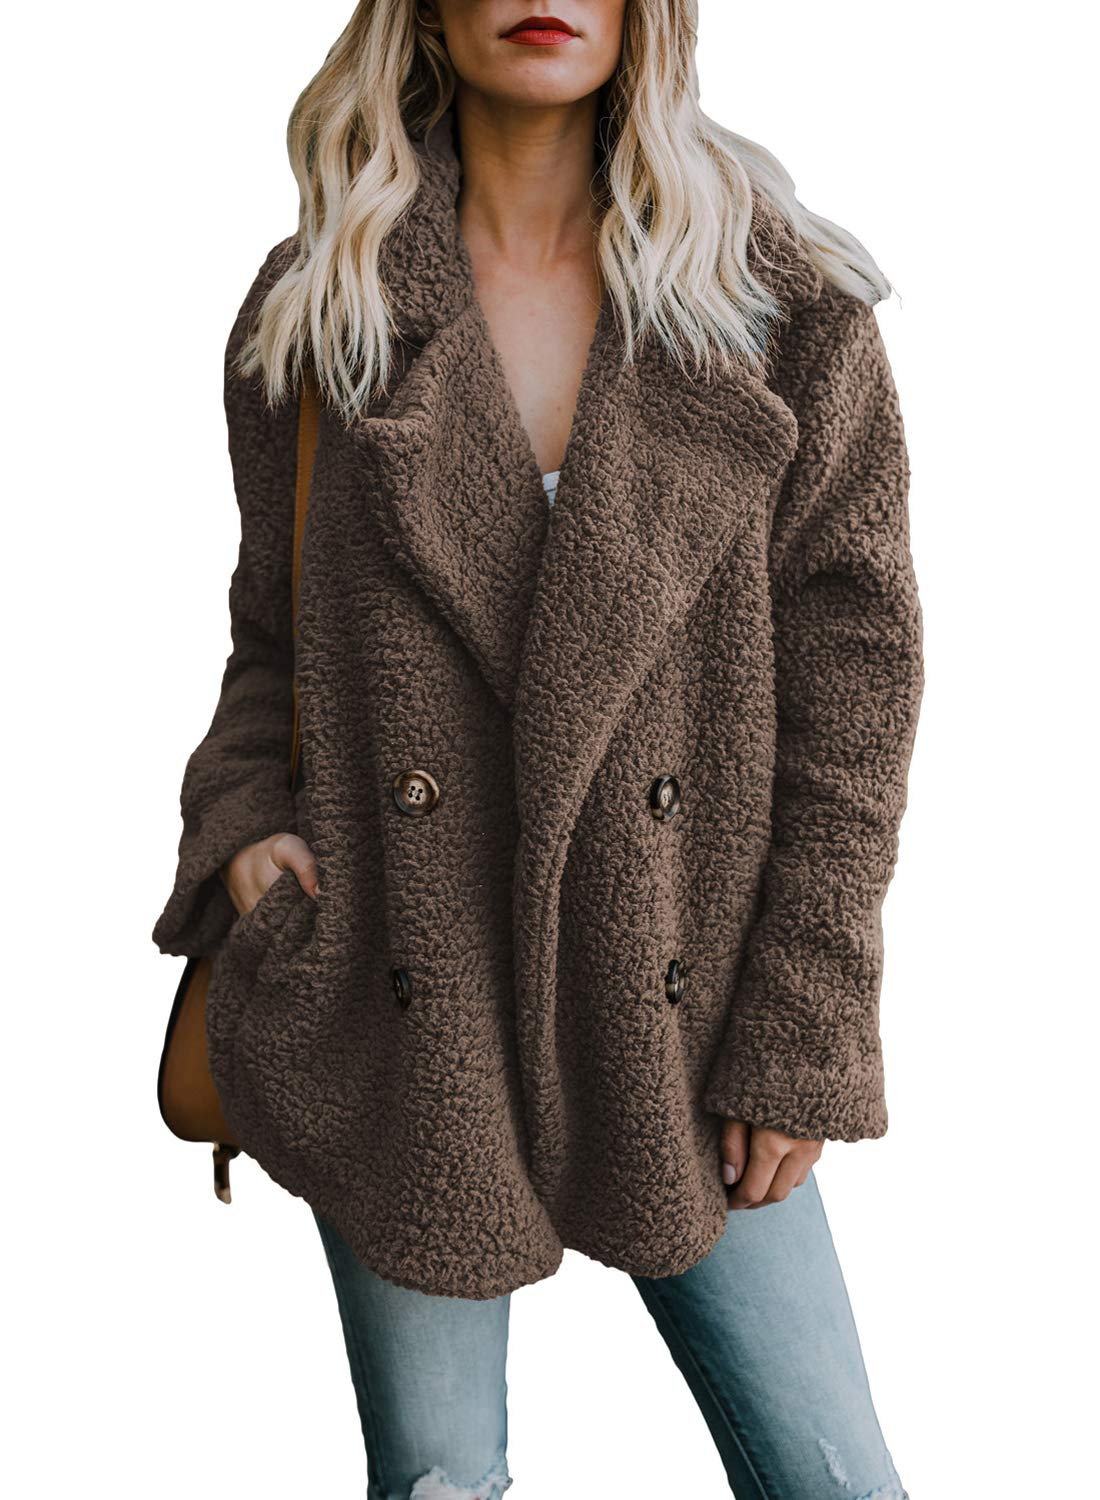 Actloe Women Fleece Open Front Long Sleeve Cardigan Casual Coat with Pockets Coffee Small by Actloe